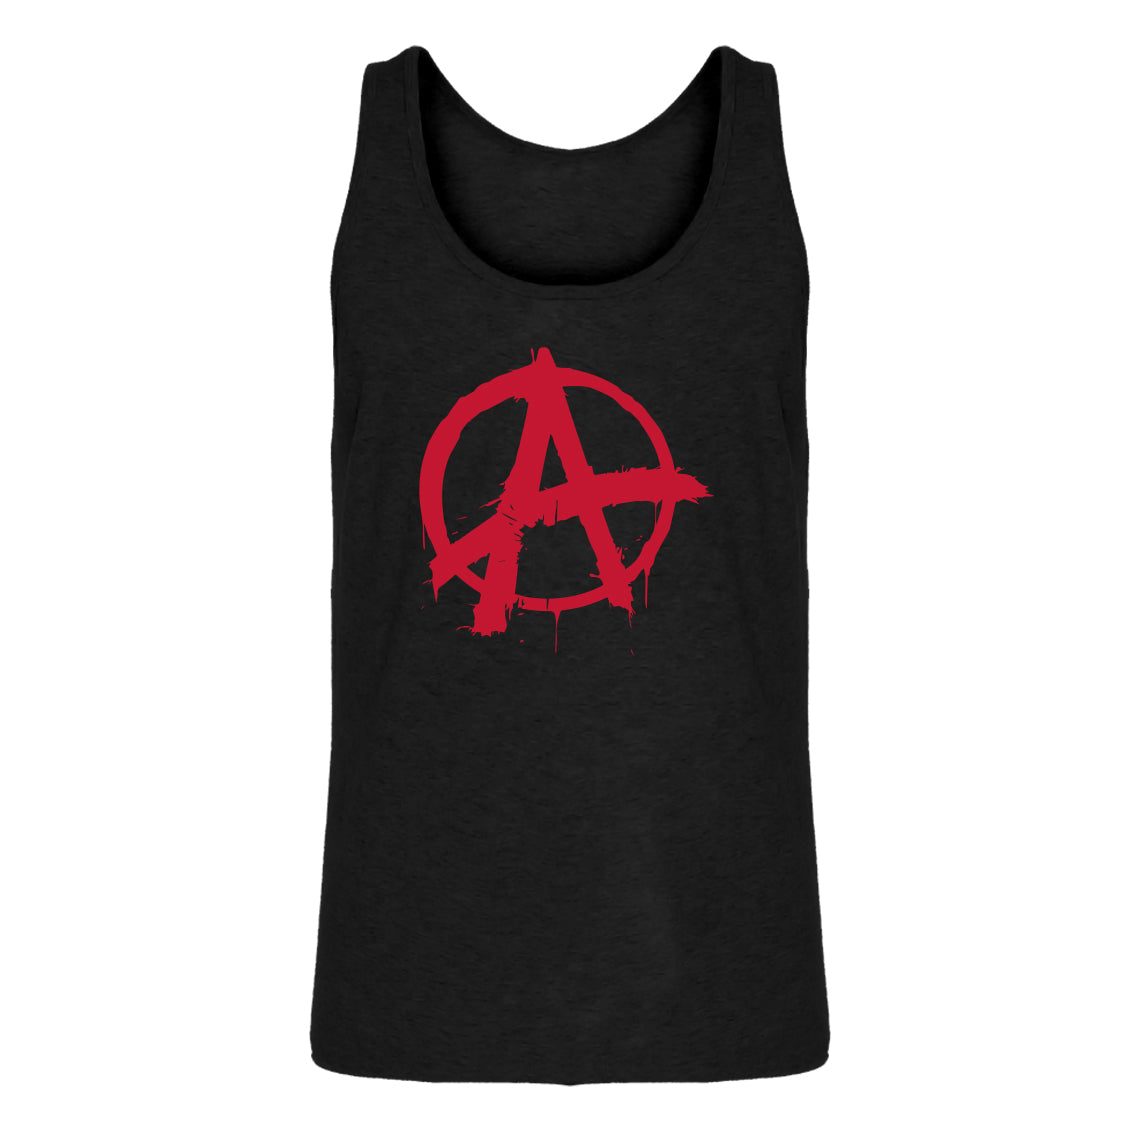 Tank Anarchy Mens Jersey Tank Top